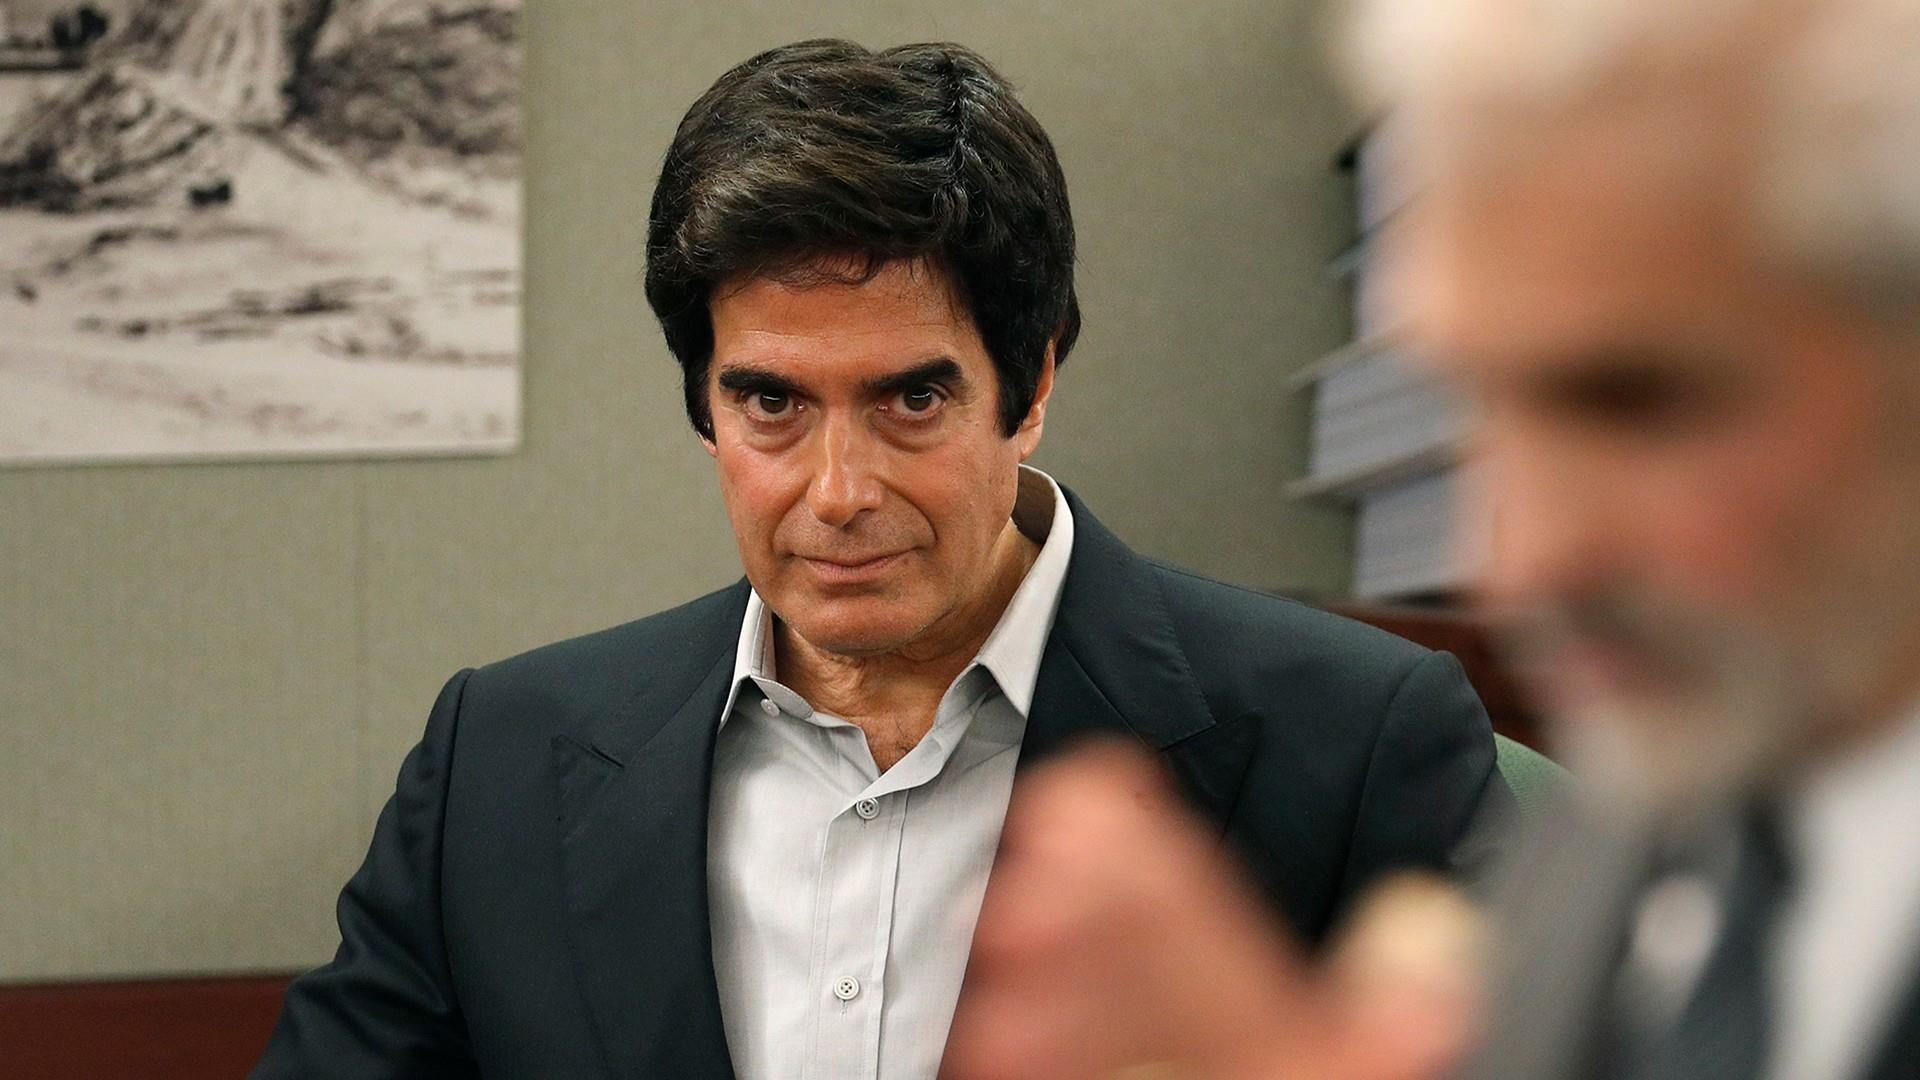 David copperfield testifies about trick that allegedly injured david copperfield testifies about trick that allegedly injured spectator nbc news m4hsunfo